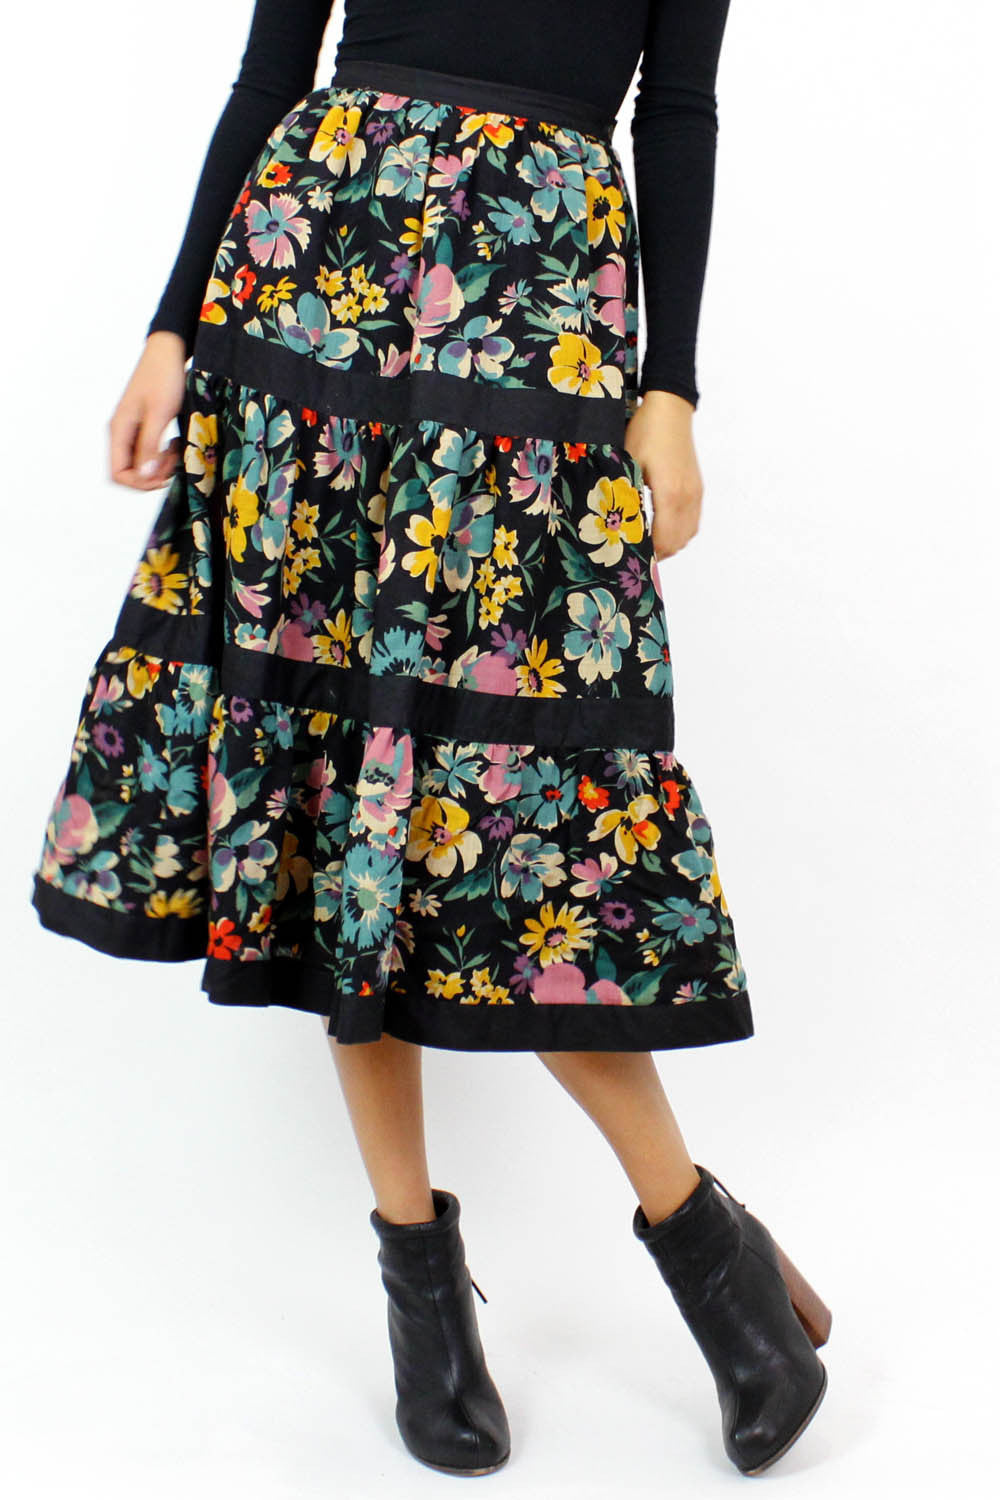 SALE / Bella peasant skirt XS